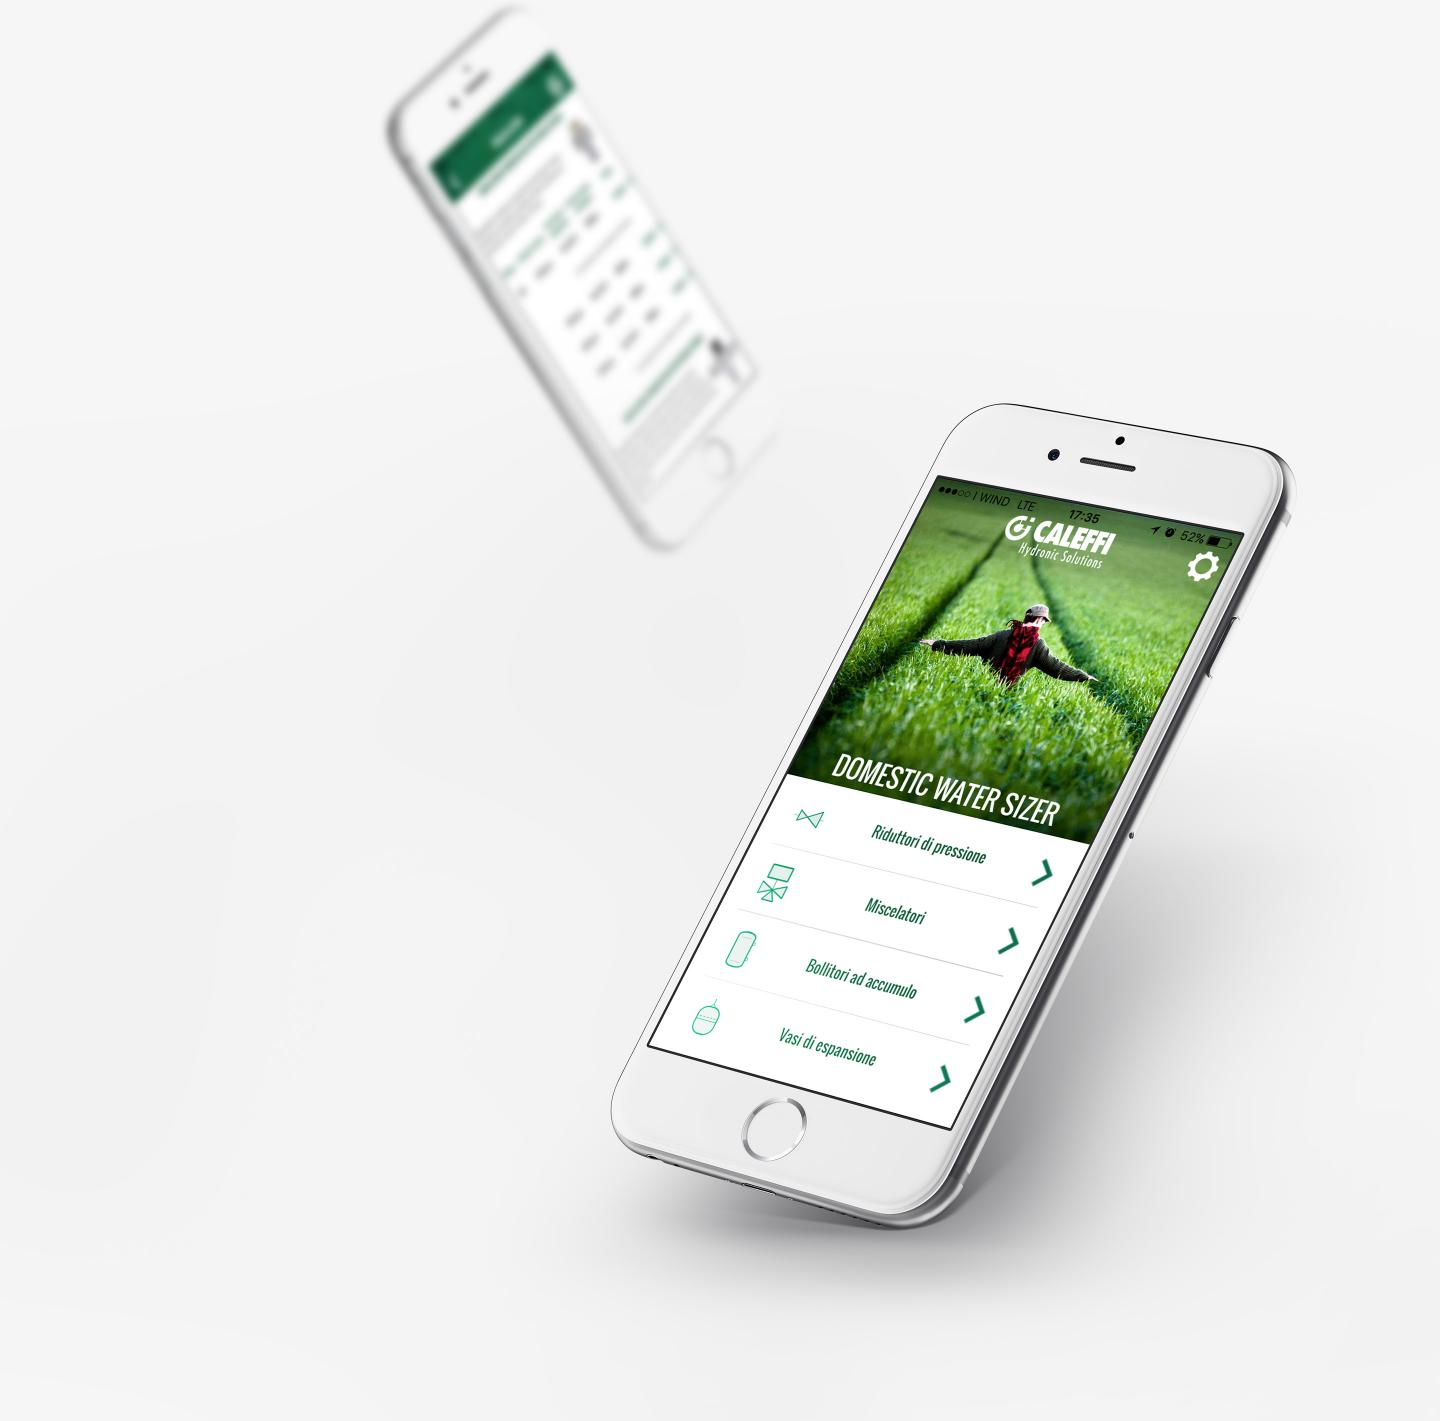 Caleffi s p a hydronic solutions for Catalogo caleffi 2015